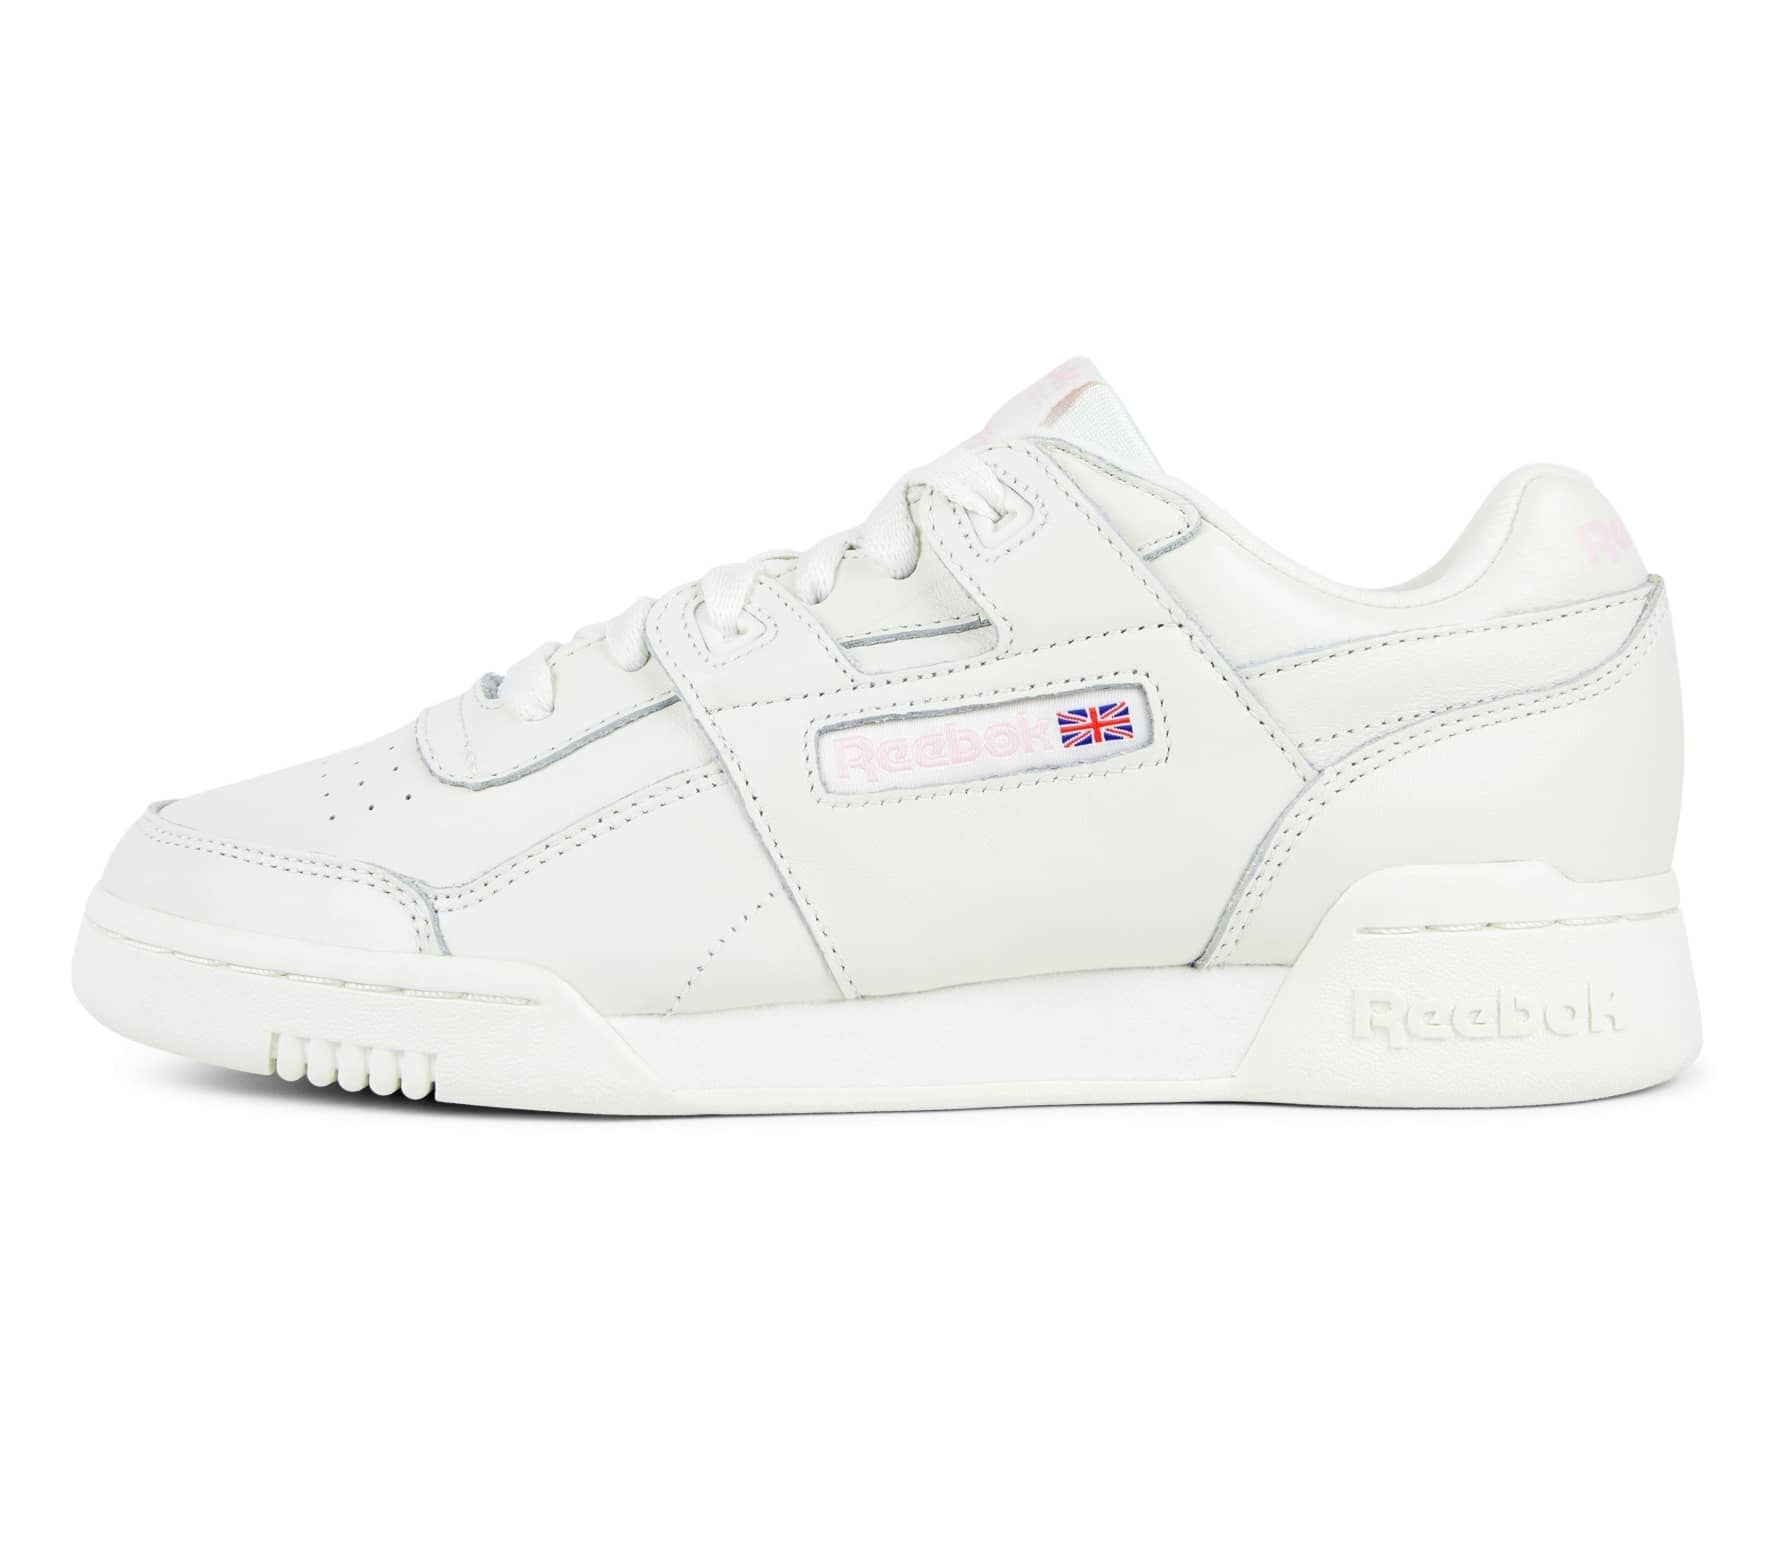 6bbcc7a3c3b1c Reebok WORKOUT LO PLUS women s trainers (white) online kaufen